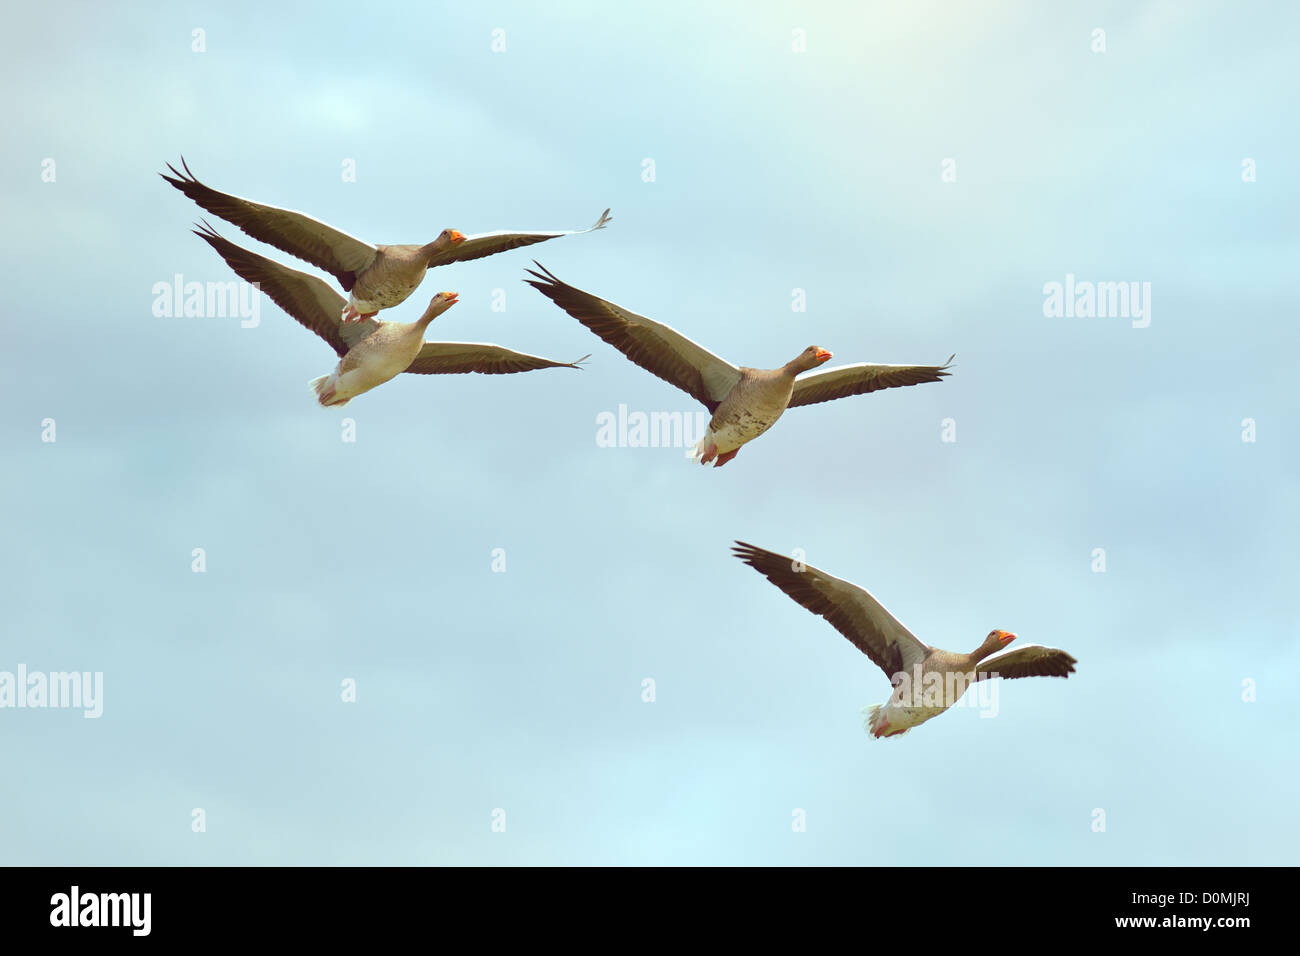 Four gray geese in flight - Stock Image